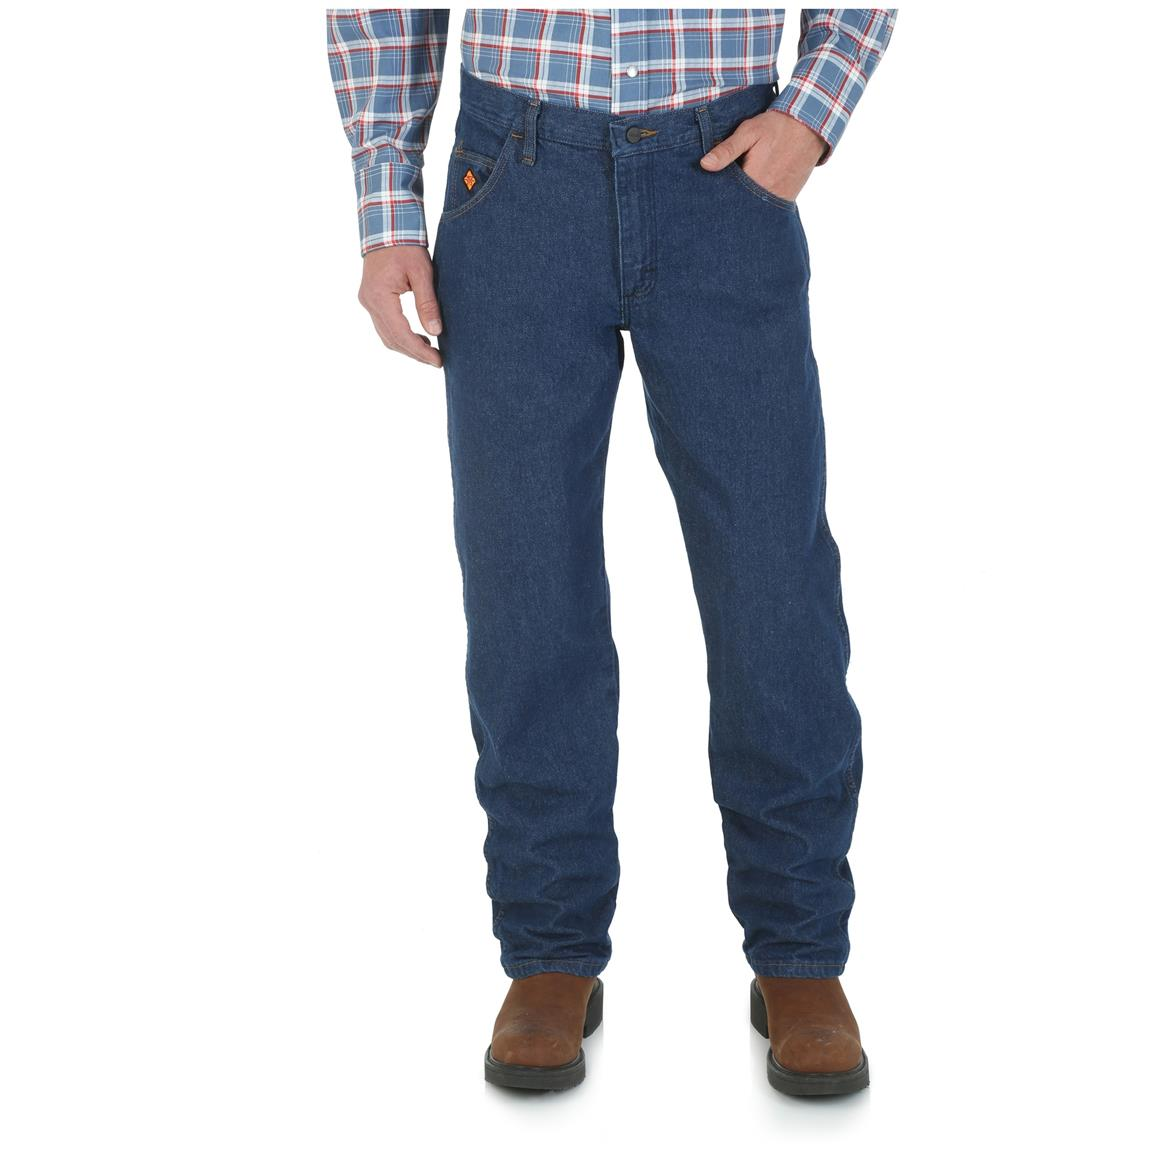 Wrangler Men's Flame Resistant Regular Fit Jeans, Lightwash